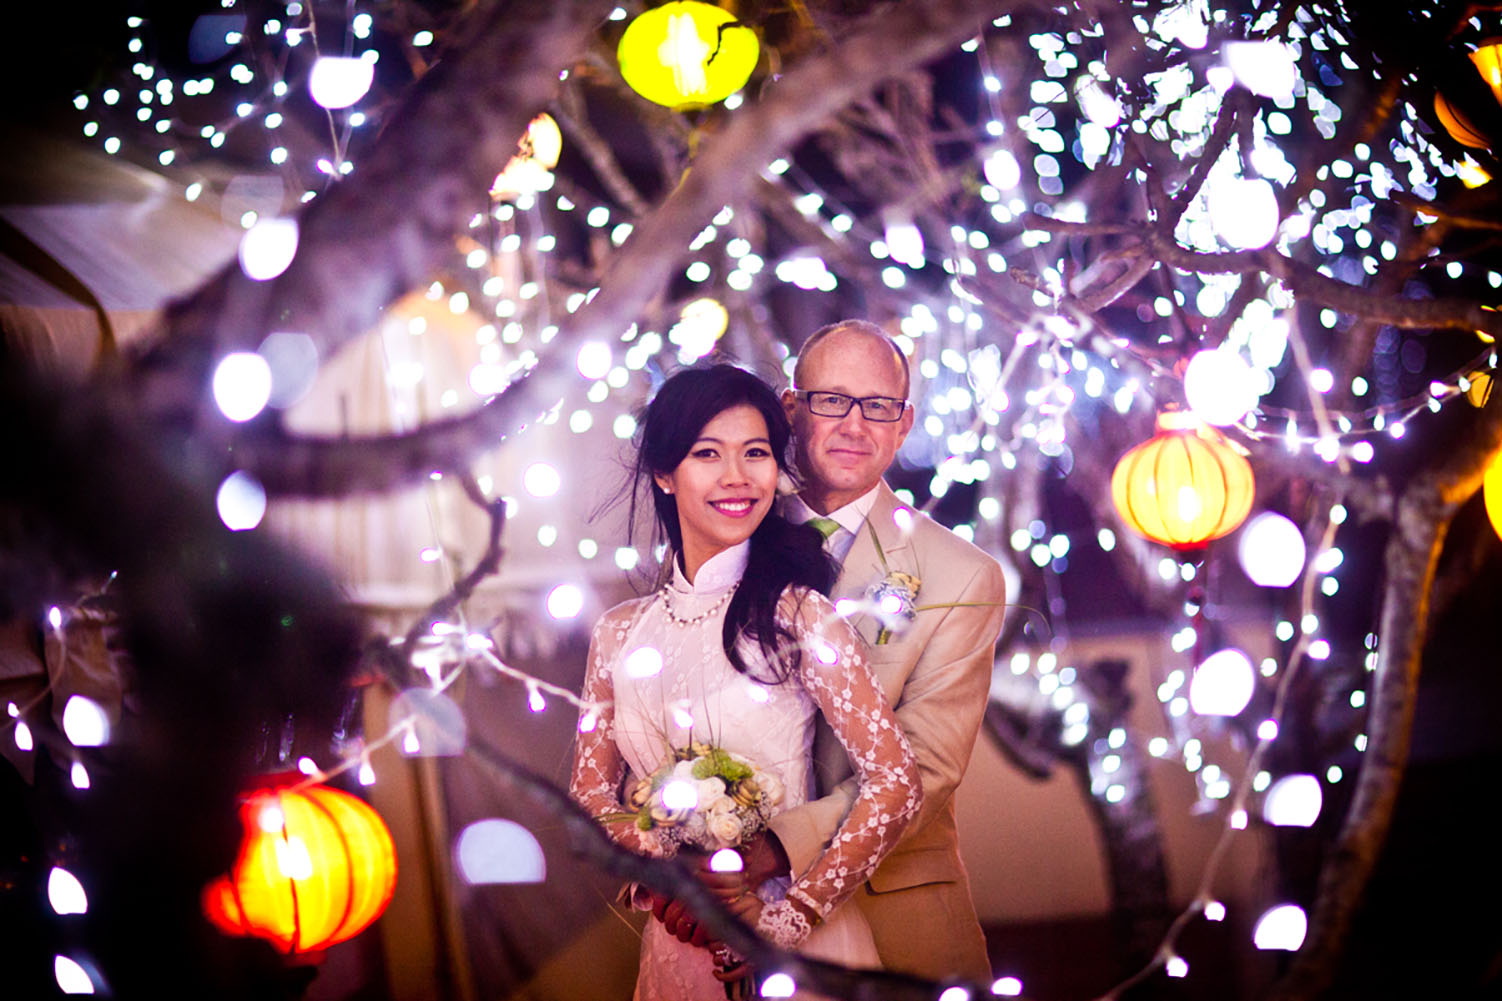 SoutheastAsia_Wedding_Photographer_Mott_Visuals_Christian_Berg-16-1